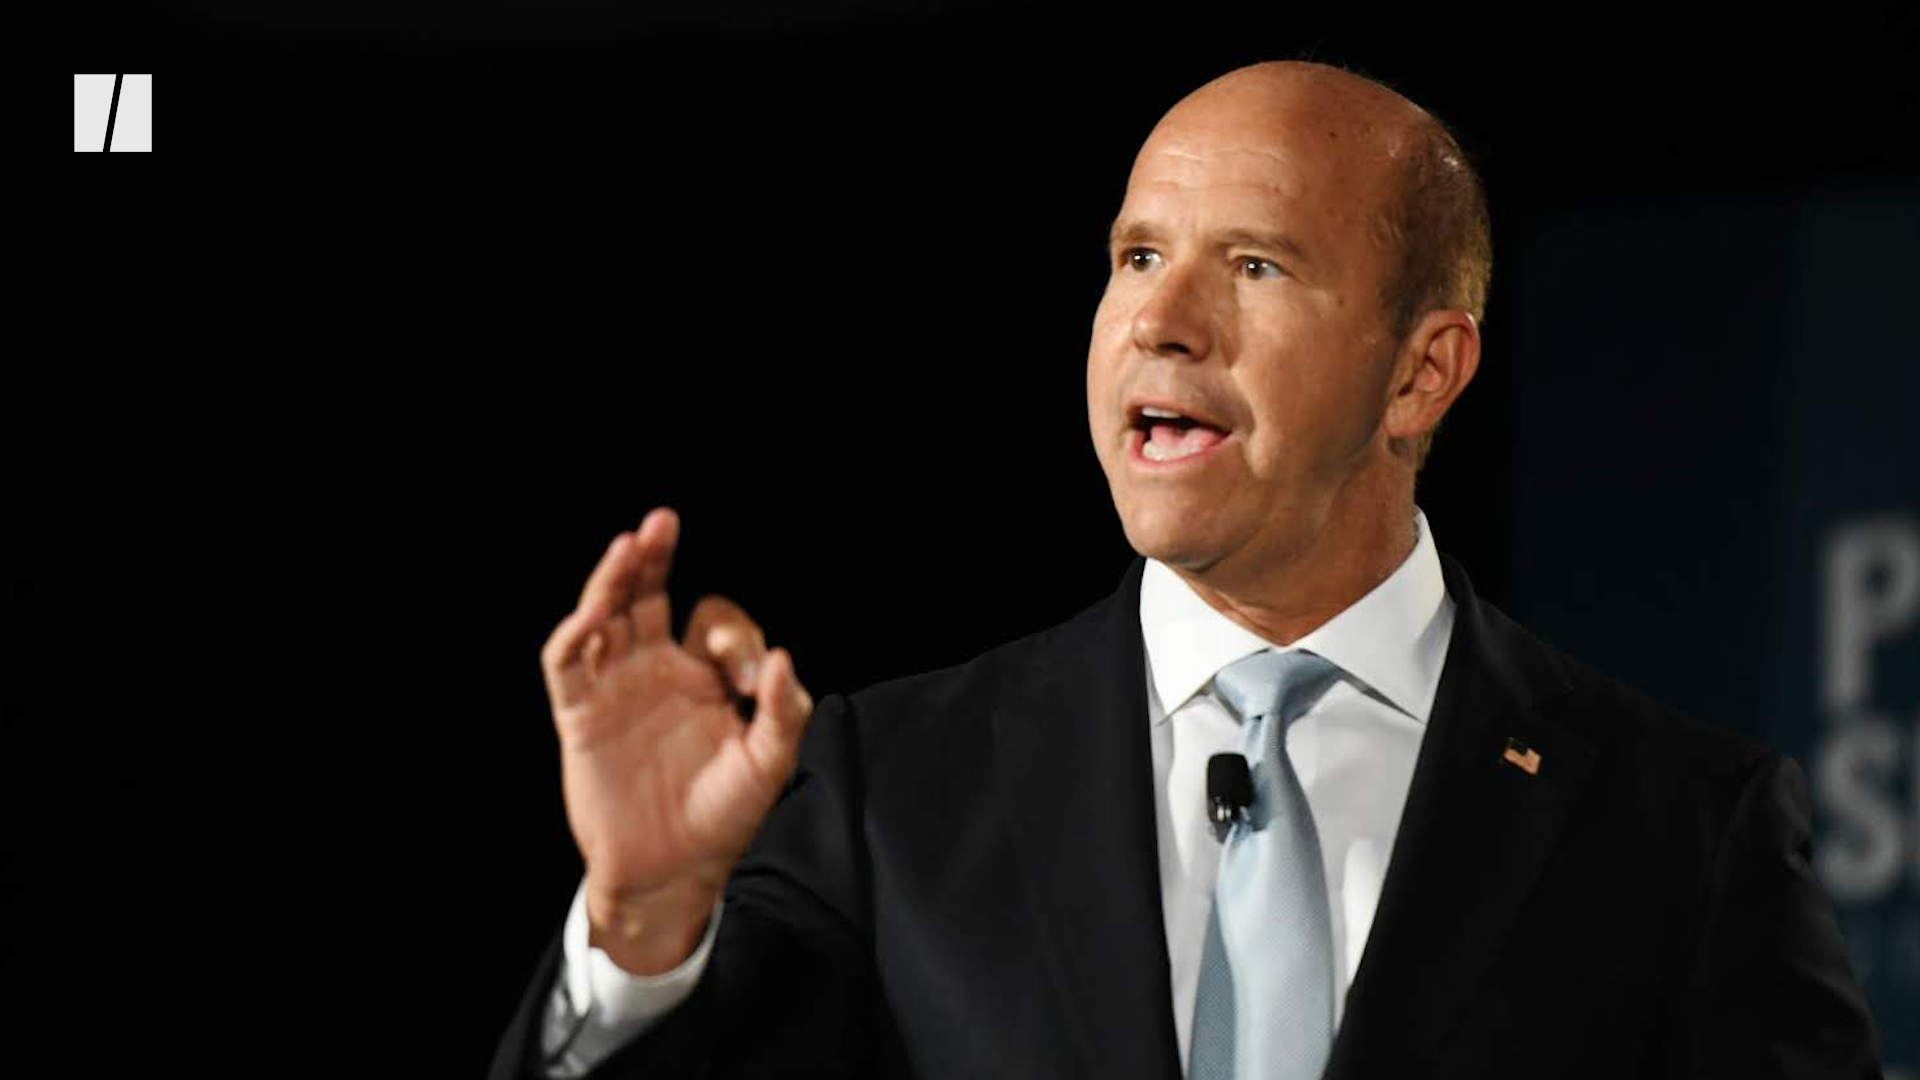 John Delaney Dismisses Criticism That He's Running In the Wrong Primary